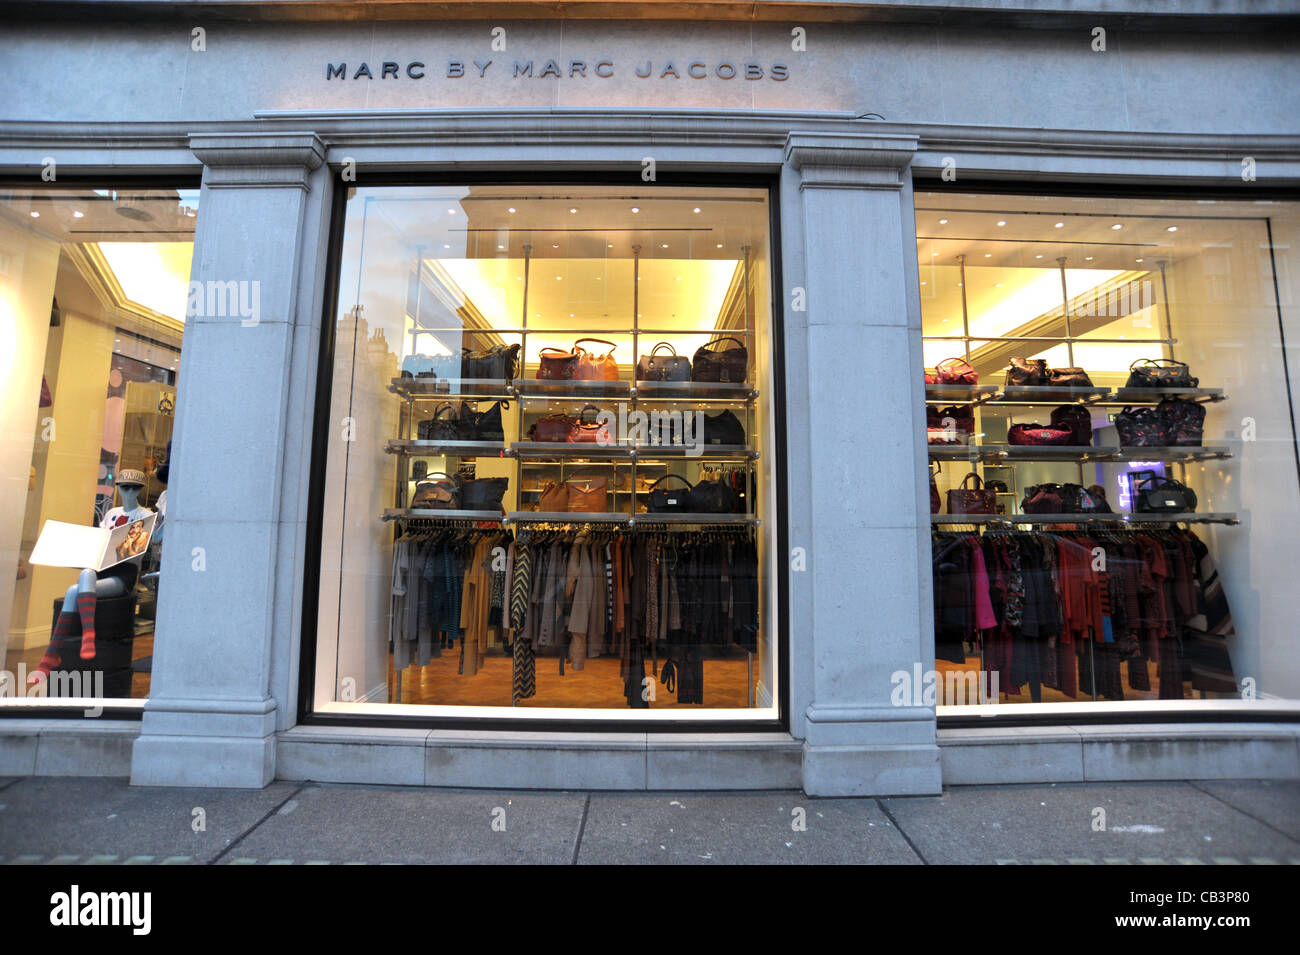 3c0bf1c52ba95 Exterior shot of the Marc By Marc Jacobs store on Mount Street London  England 2011 -